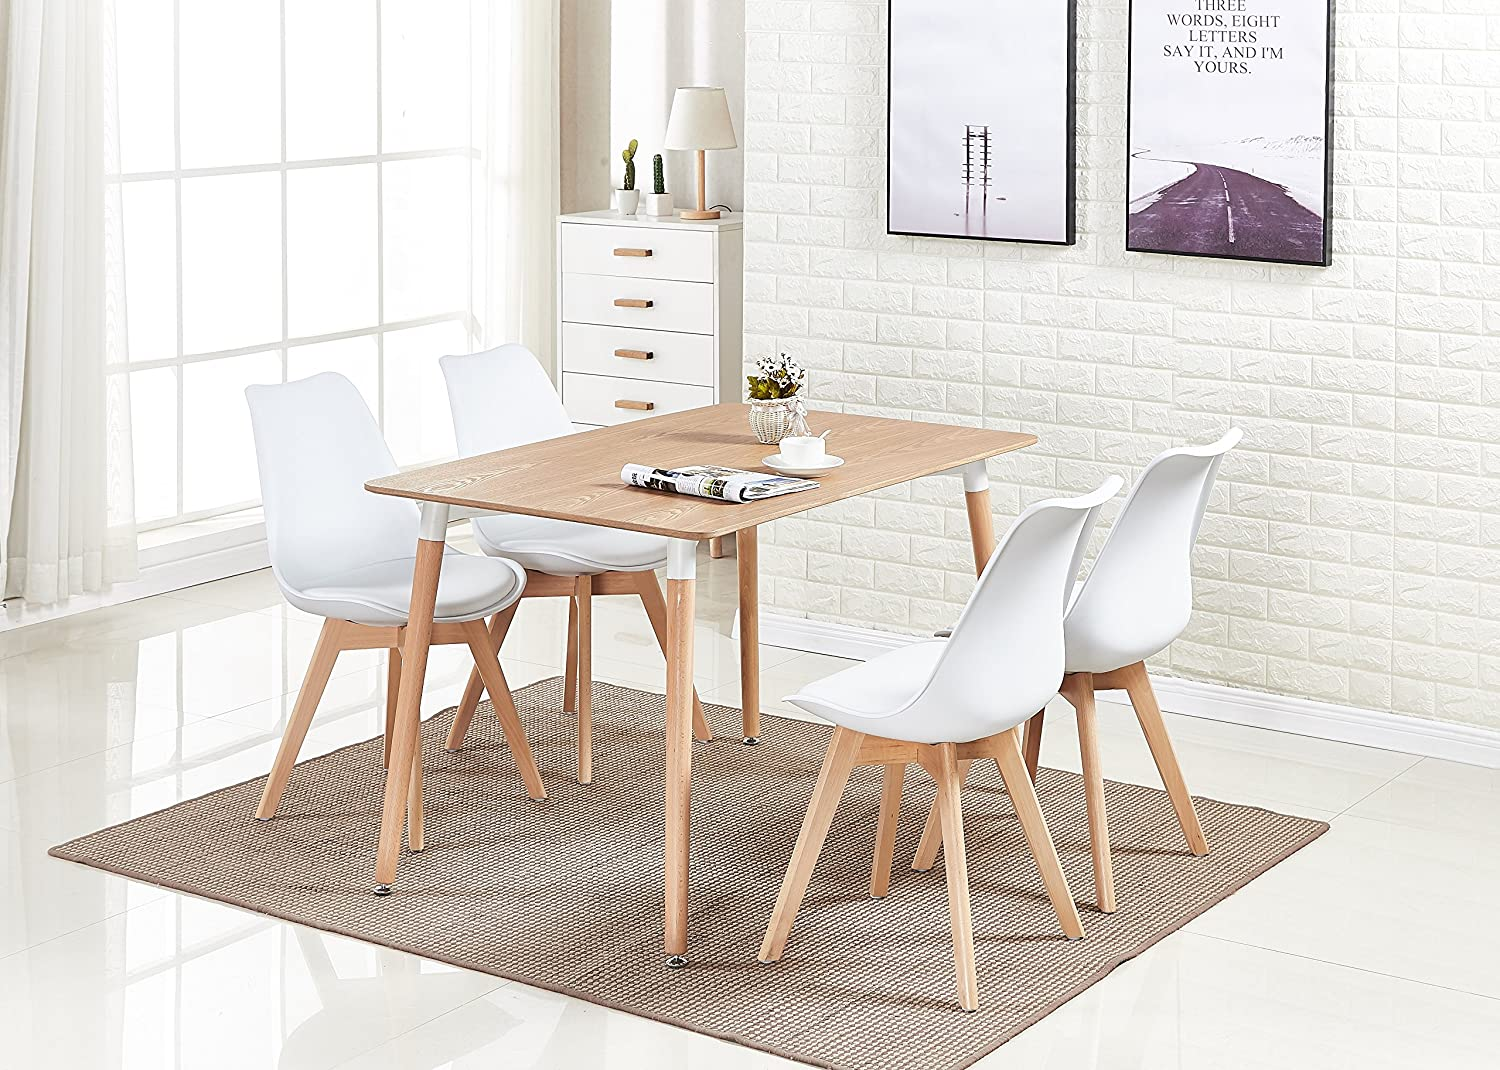 where to buy dining table and chairs